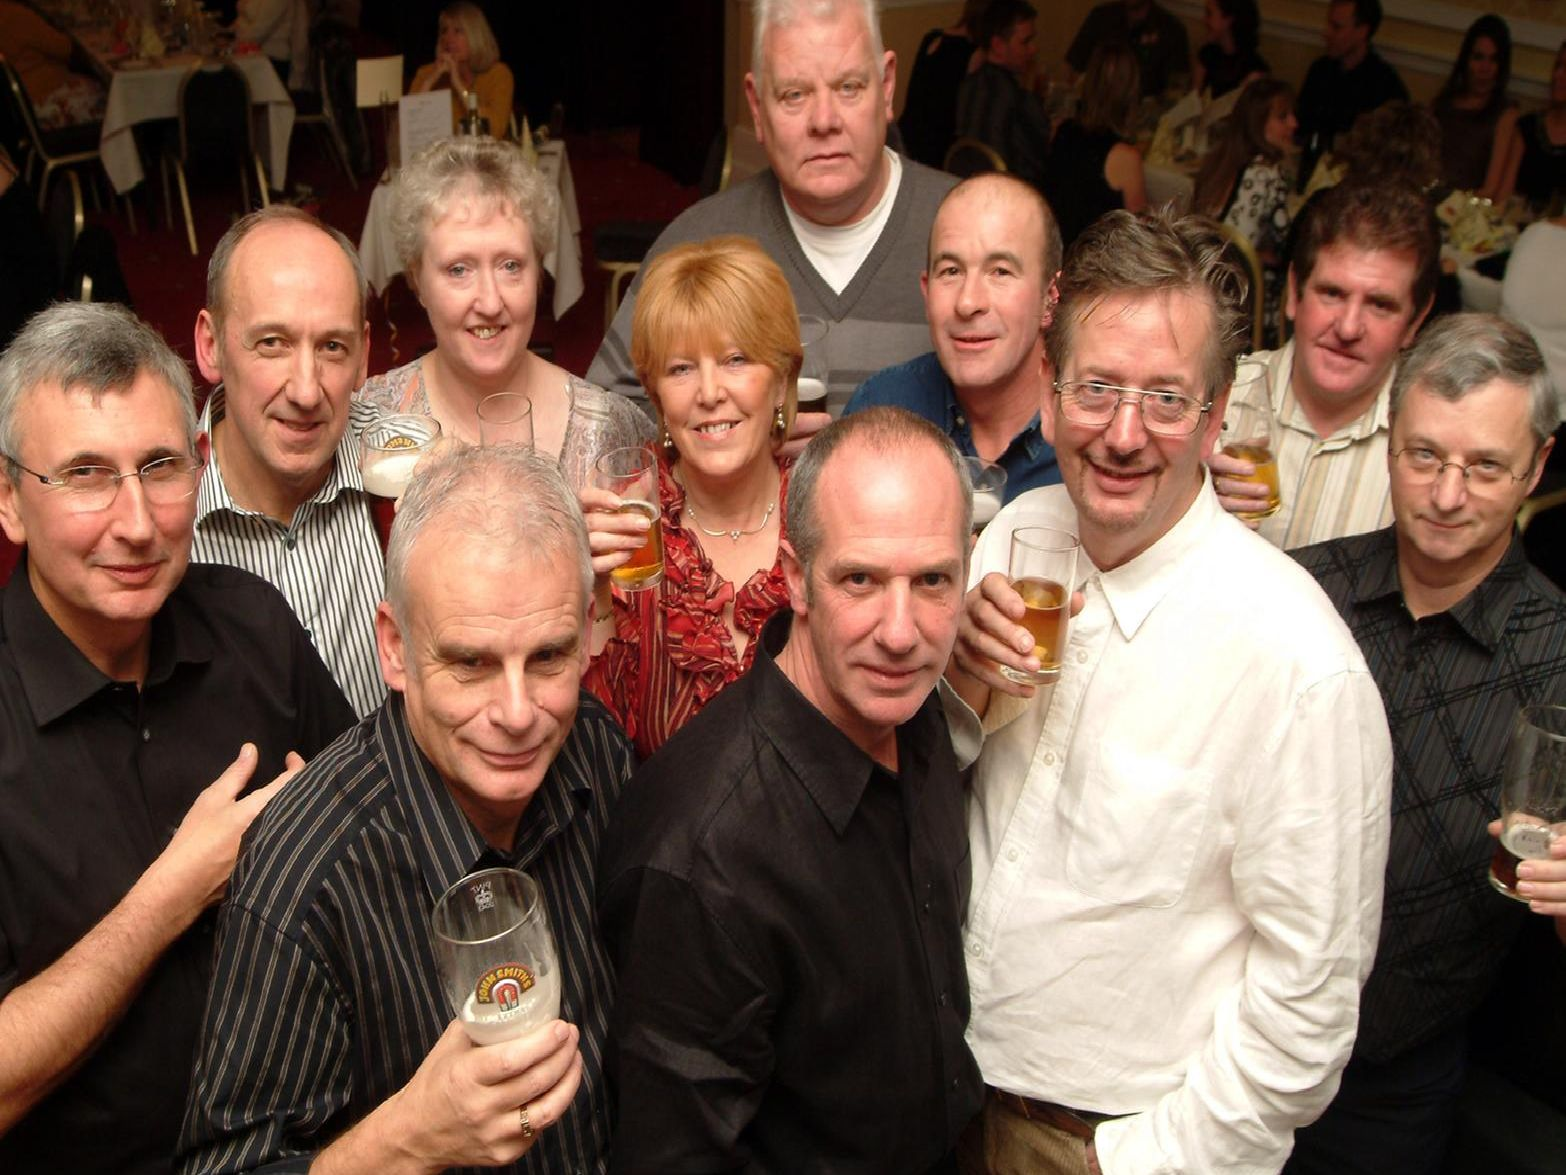 2007: This group from Hartland/Portland School are enjoying their annual school reunion at the West Retford Hotel.